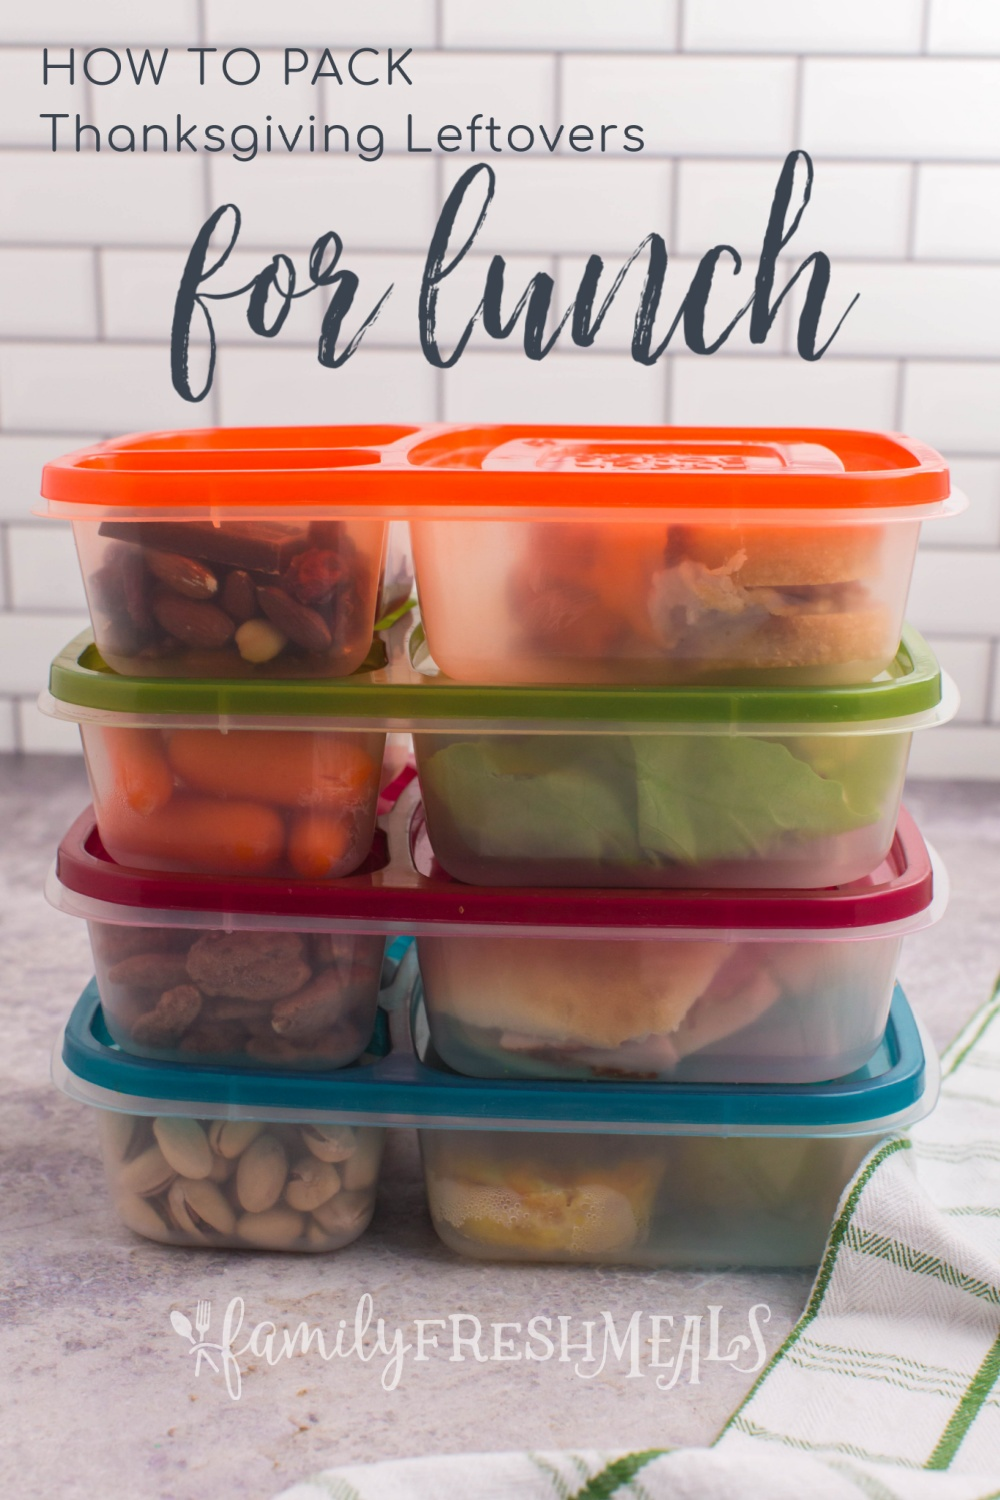 Rather than just serve up a rerun of Thanksgiving dinner, here are some new and fun Leftover Thanksgiving Food Lunchbox Ideas. via @familyfresh